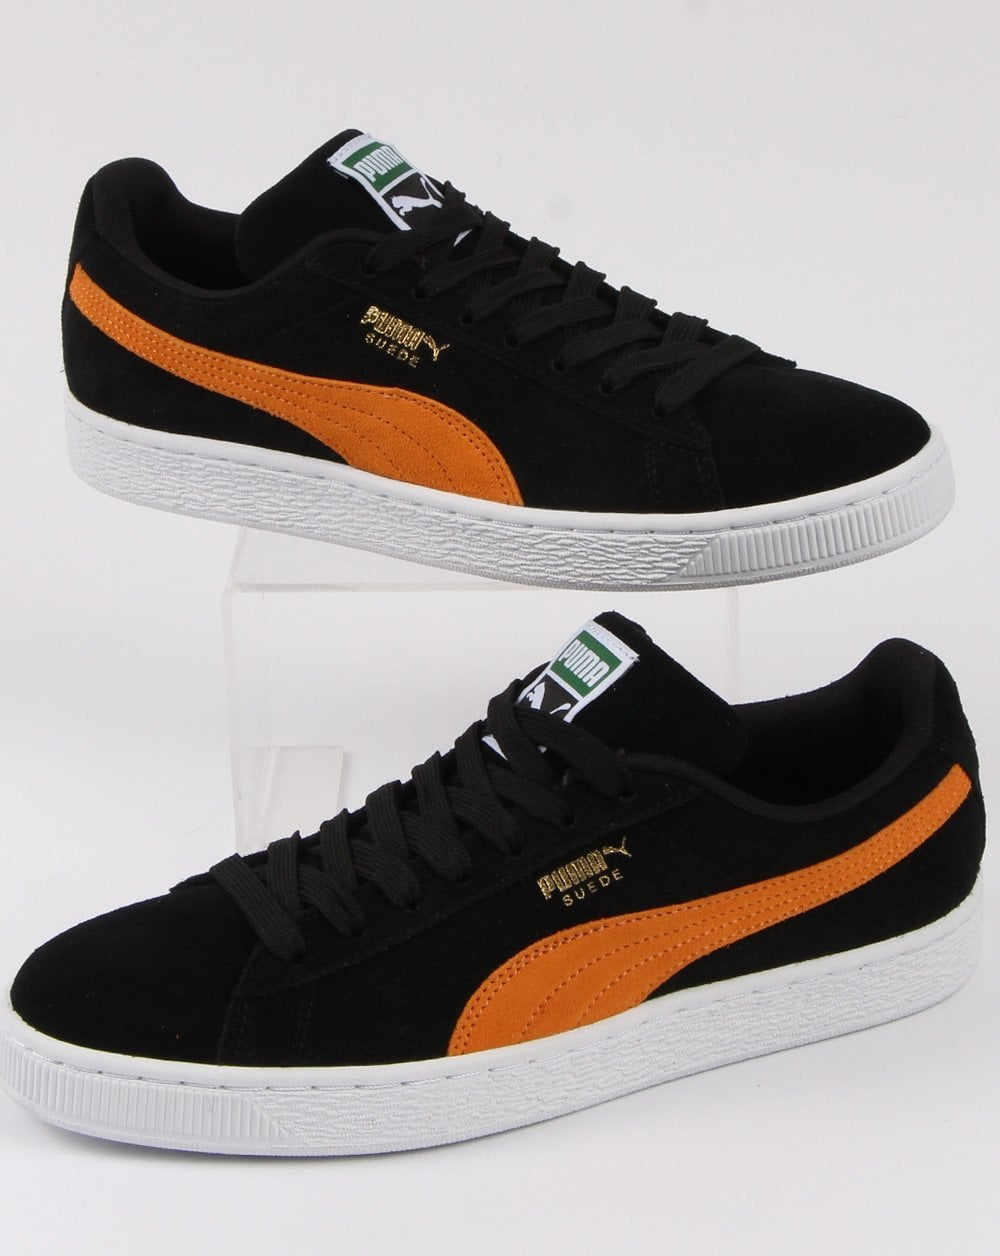 official photos 8da31 14c3d Puma Suede Classic Trainer Black/orange